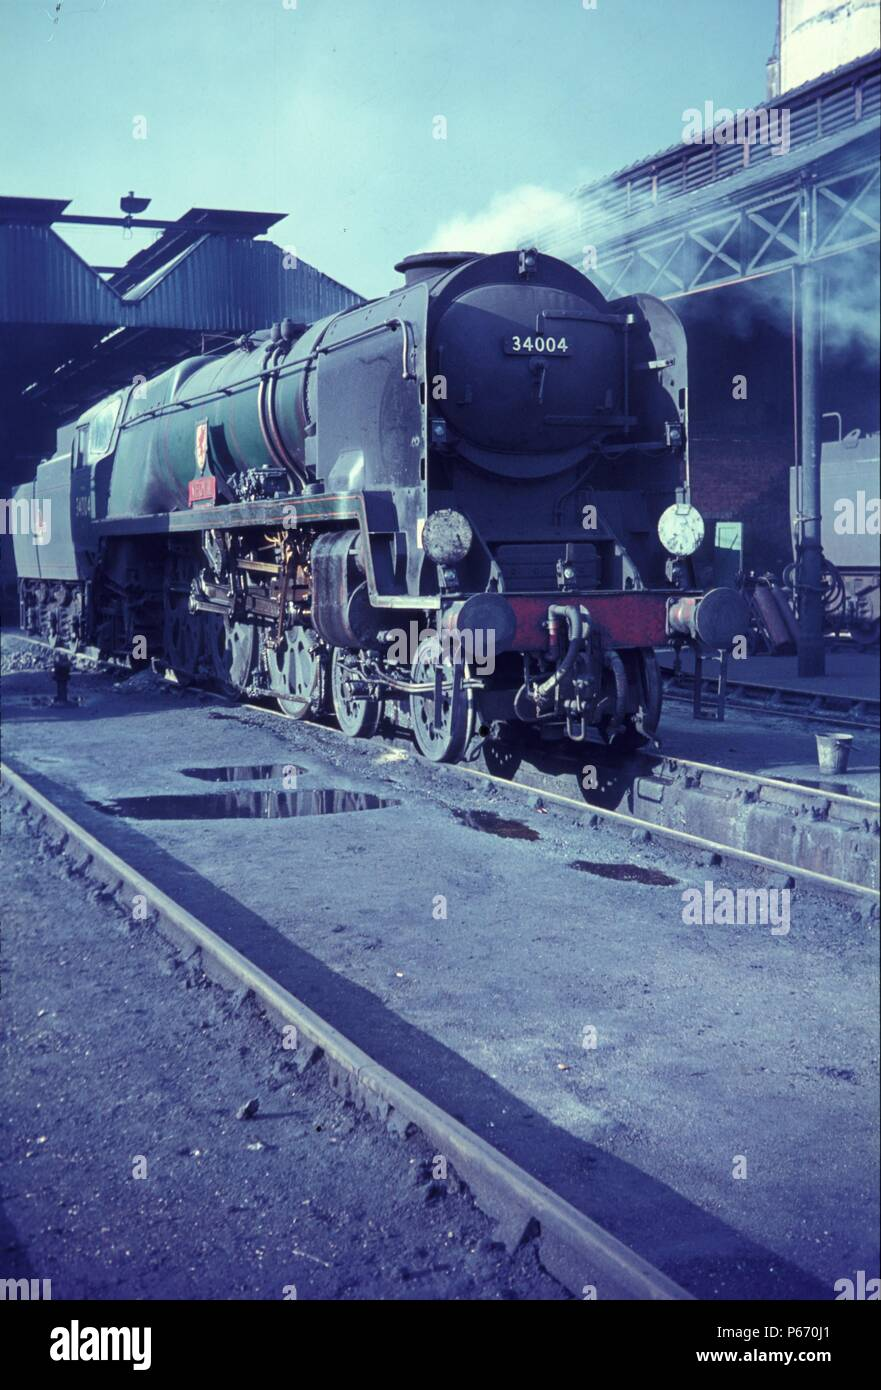 The magic of Bournemouth Motive Power Depot in the final years of steam is epitomised by this study of re-built Bulleid West Country Class Pacific 4-6 - Stock Image